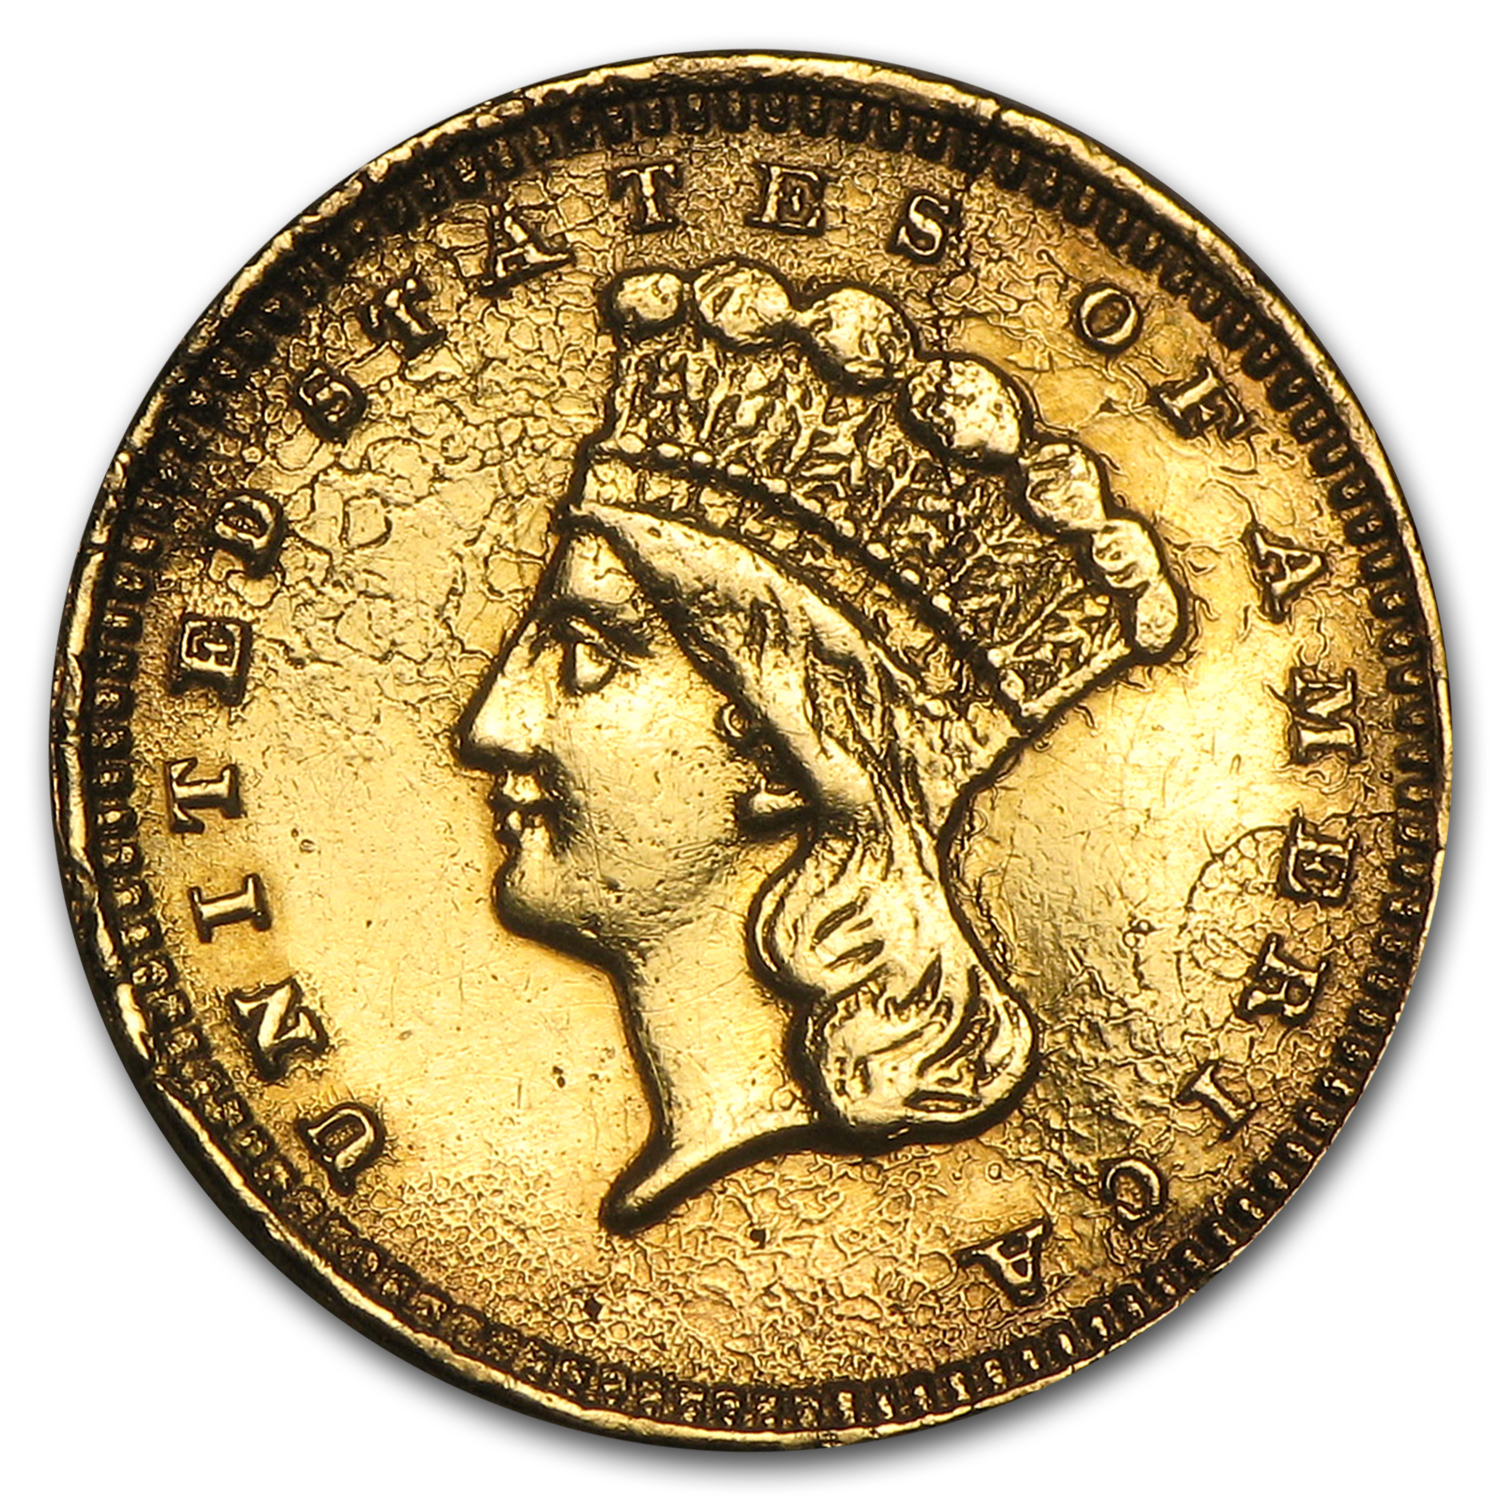 $1 Indian Head Gold - Type 3 - Heavily Damaged